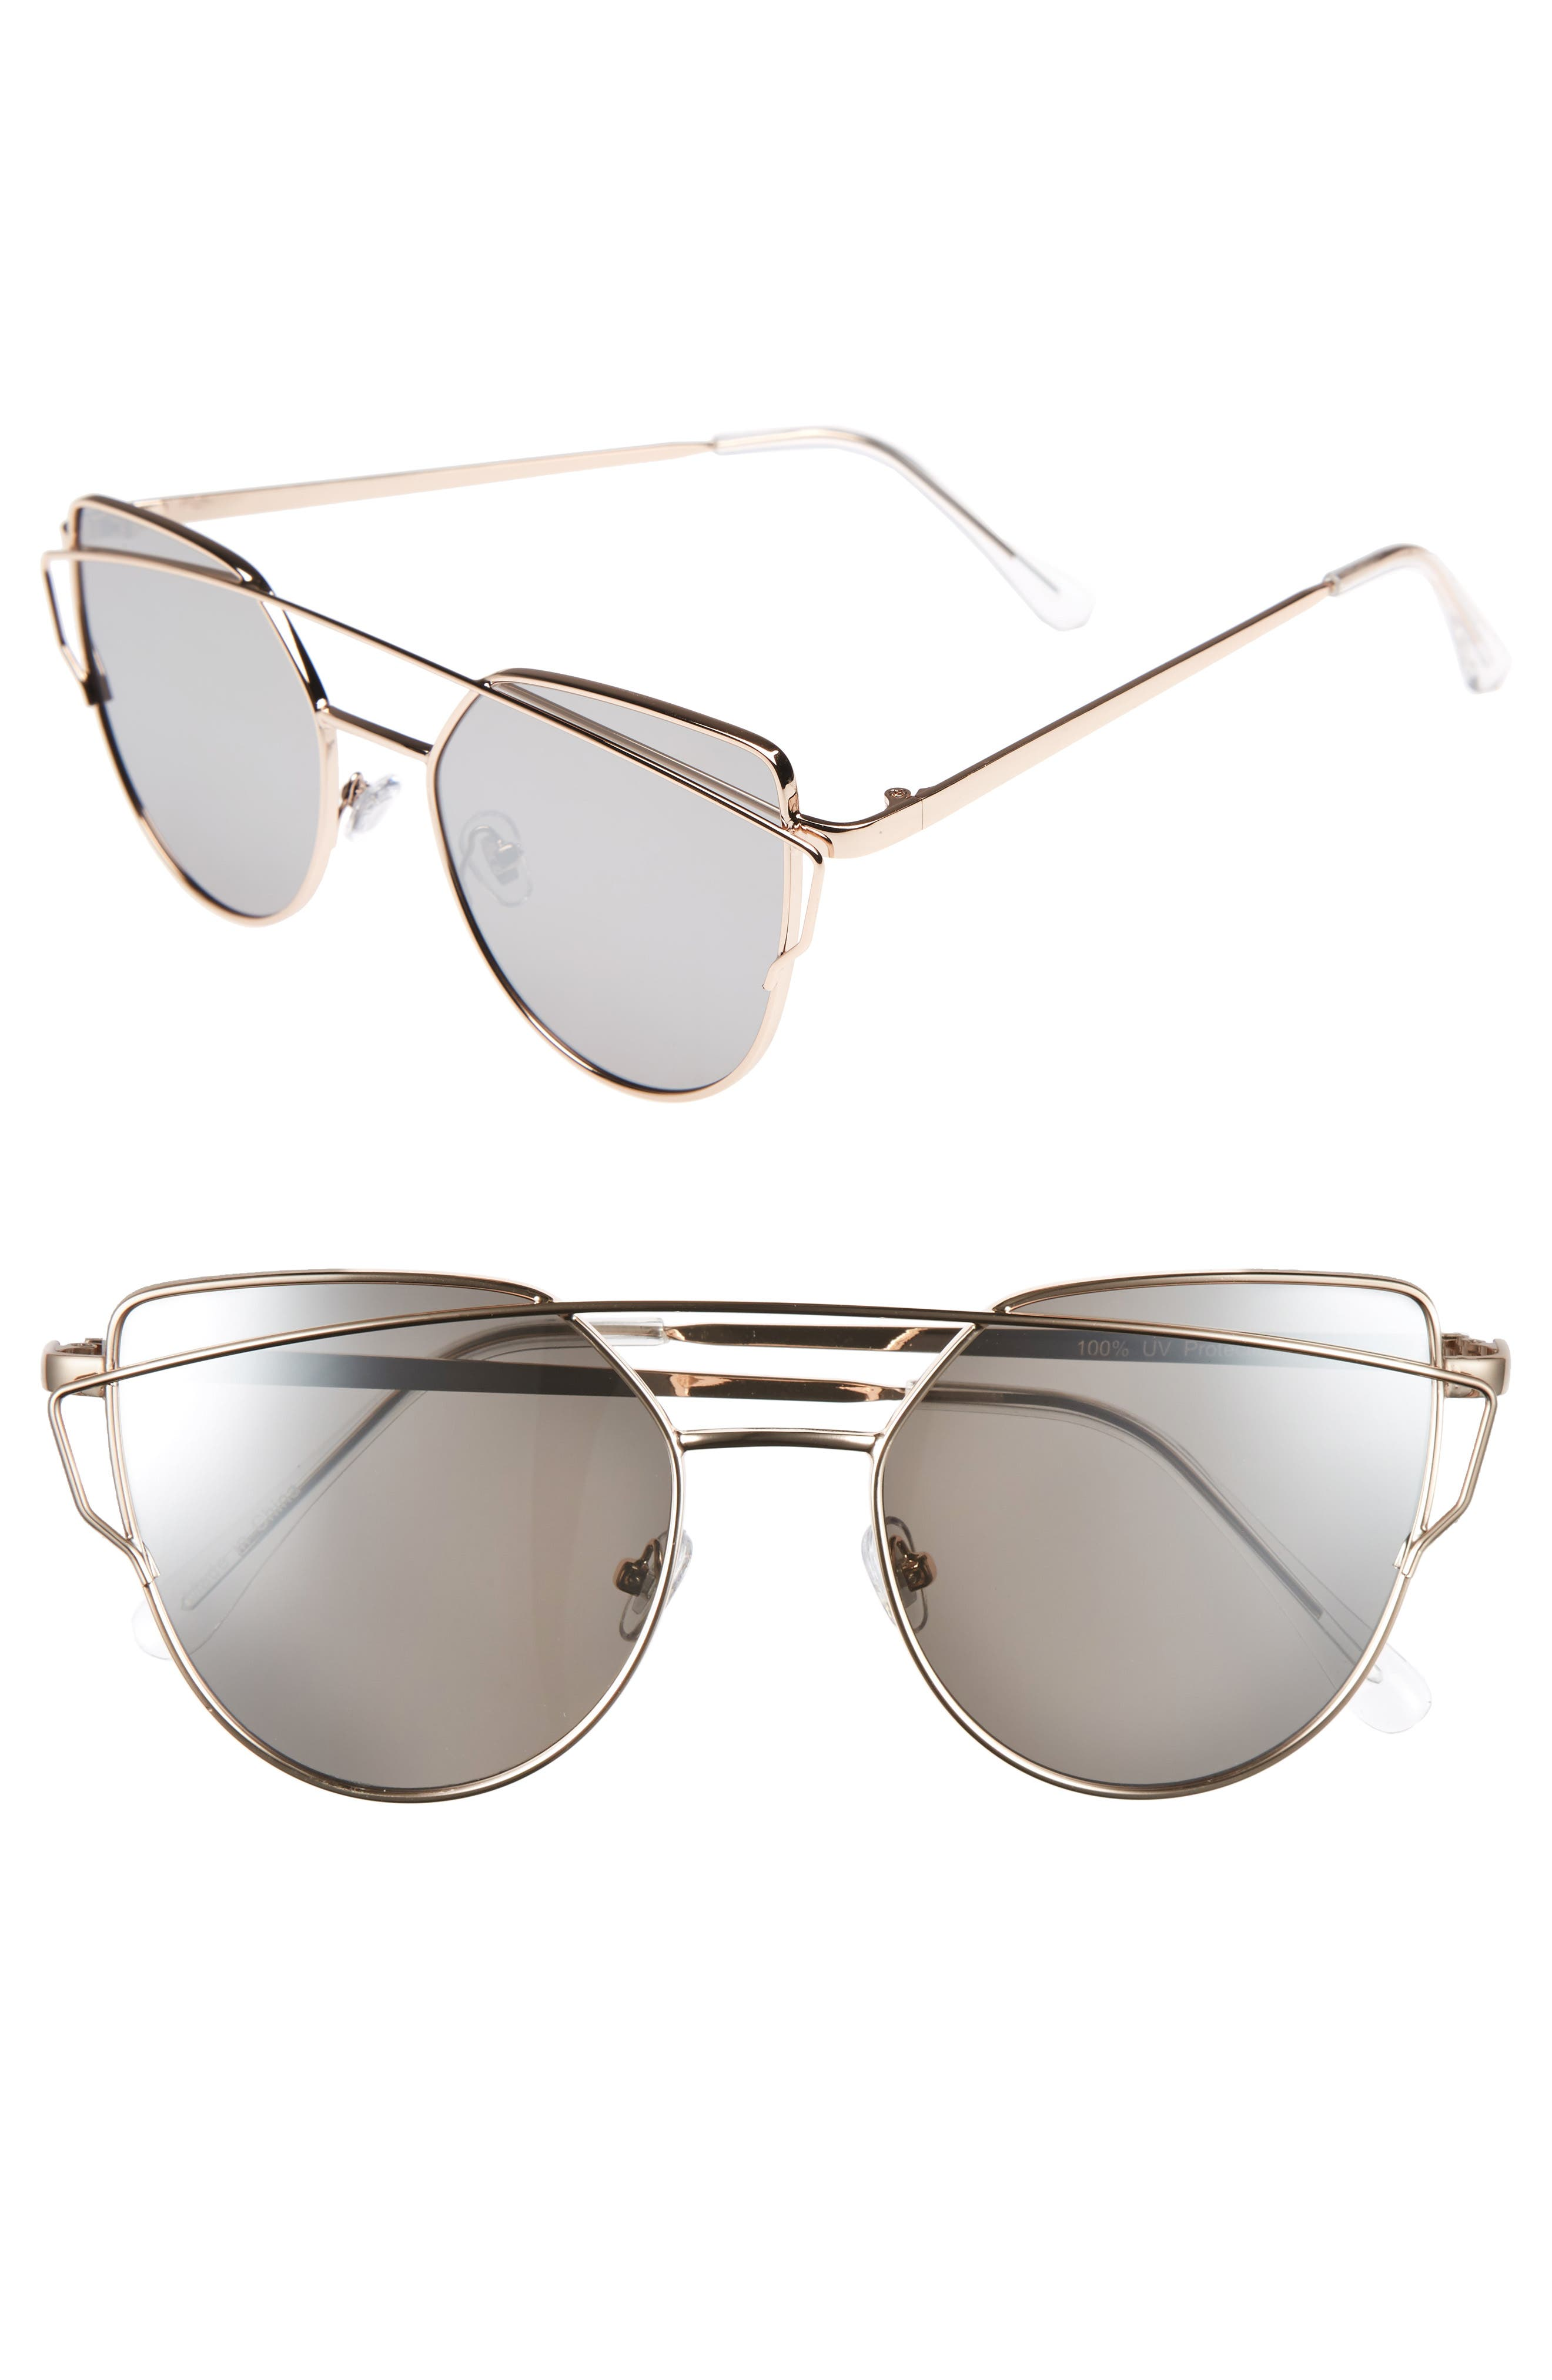 51mm Thin Brow Angular Aviator Sunglasses,                             Alternate thumbnail 12, color,